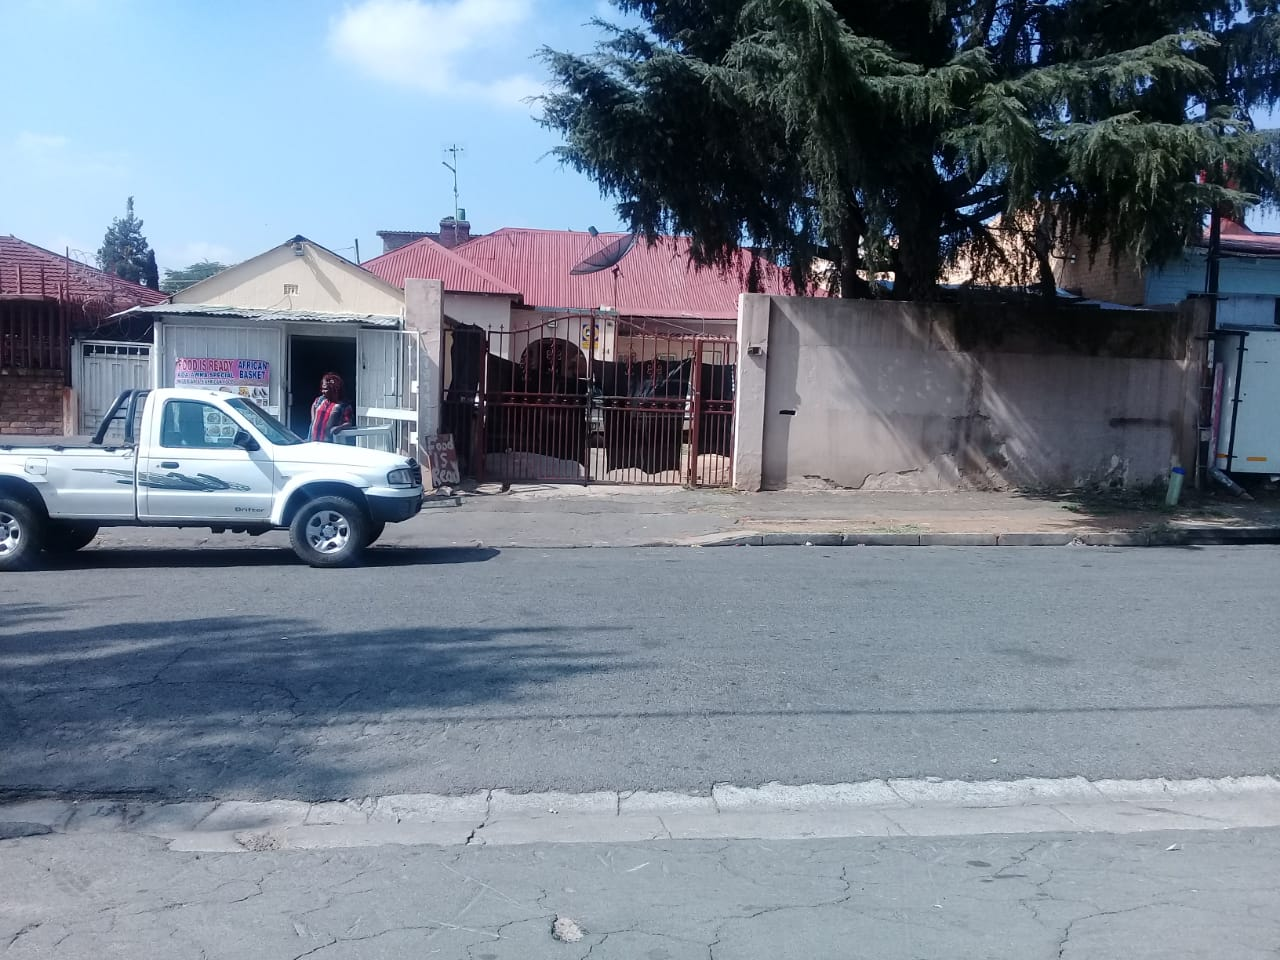 INVESTMENT 3 BEDROOM HOUSE - REGENTS PARK, JHB SOUTH